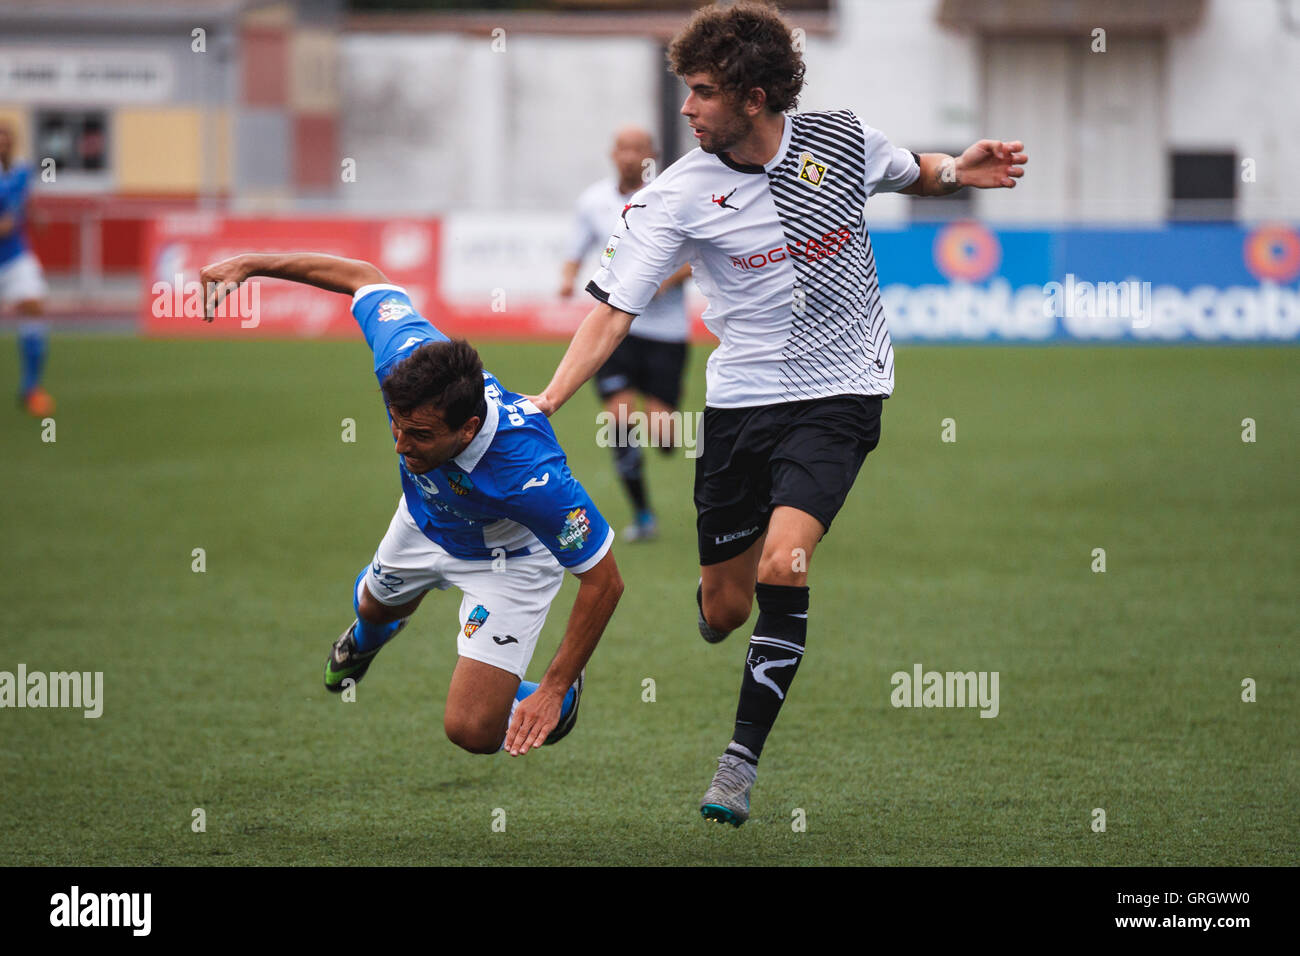 7/9/2016. Mieres, Spain. 2nd Round of Spanish Copa del Rey game between Caudal Deportivo and  Lleida Esportiu. - Stock Image